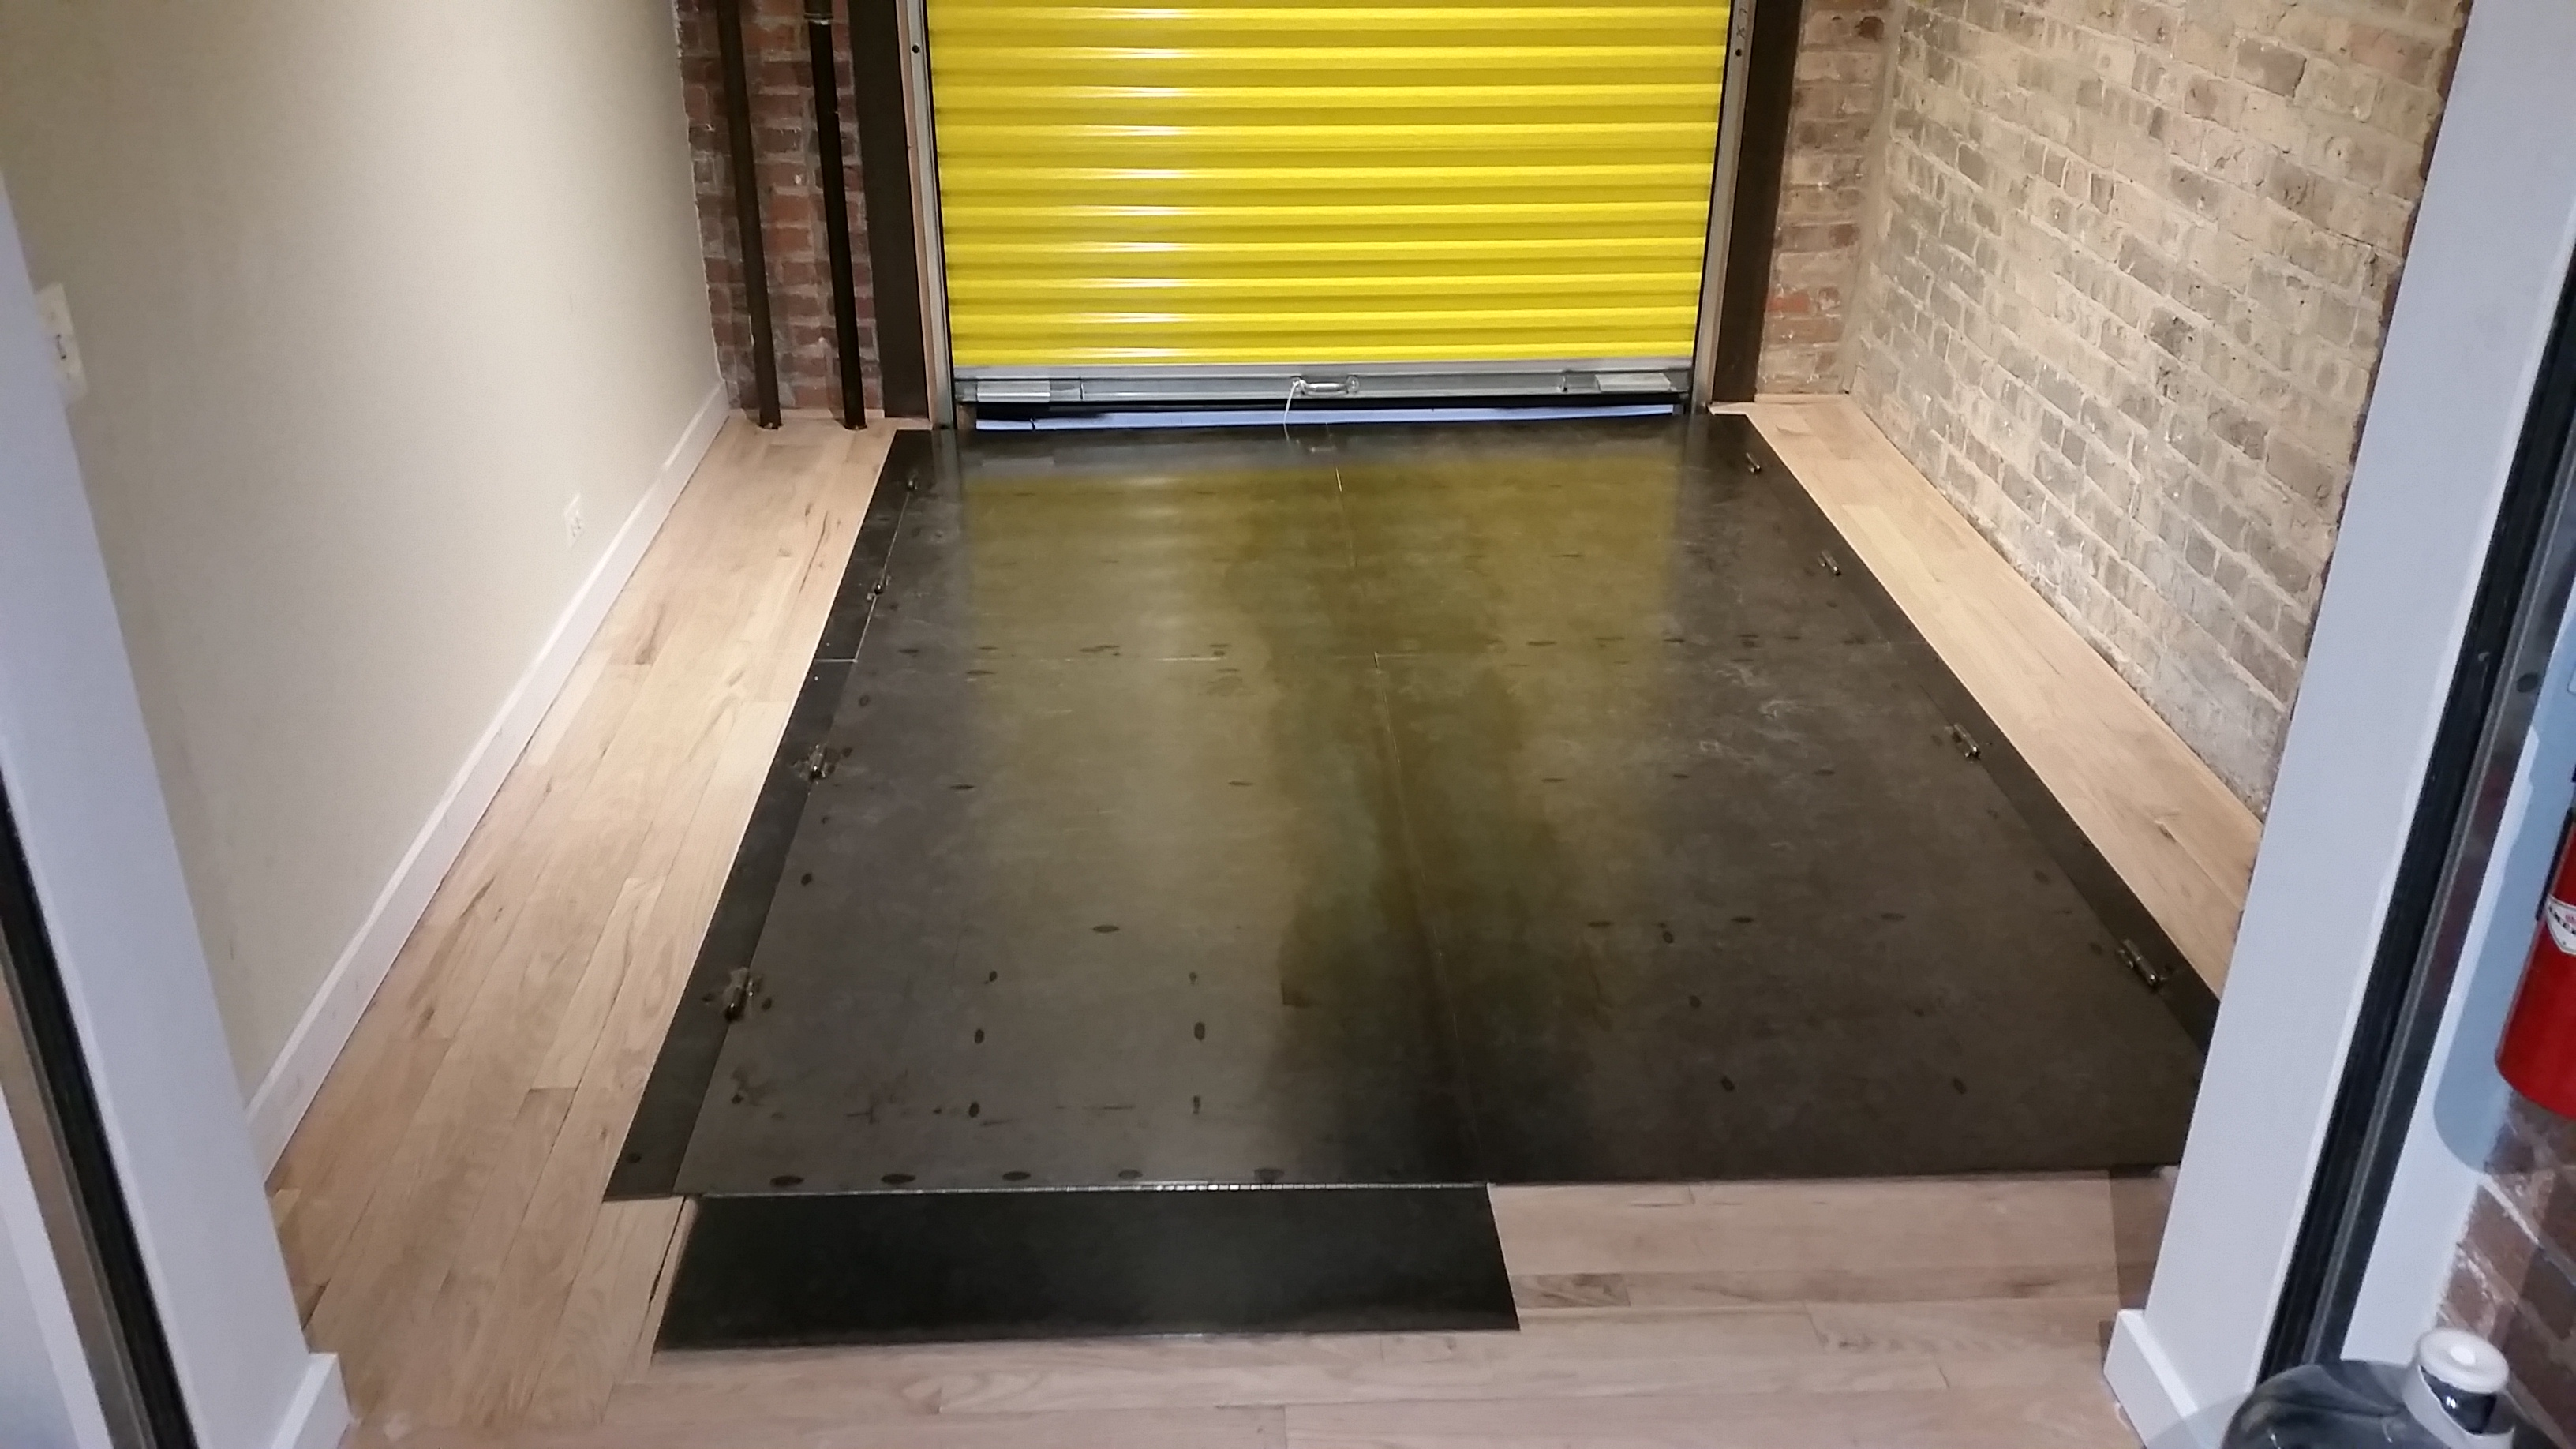 Removable floor